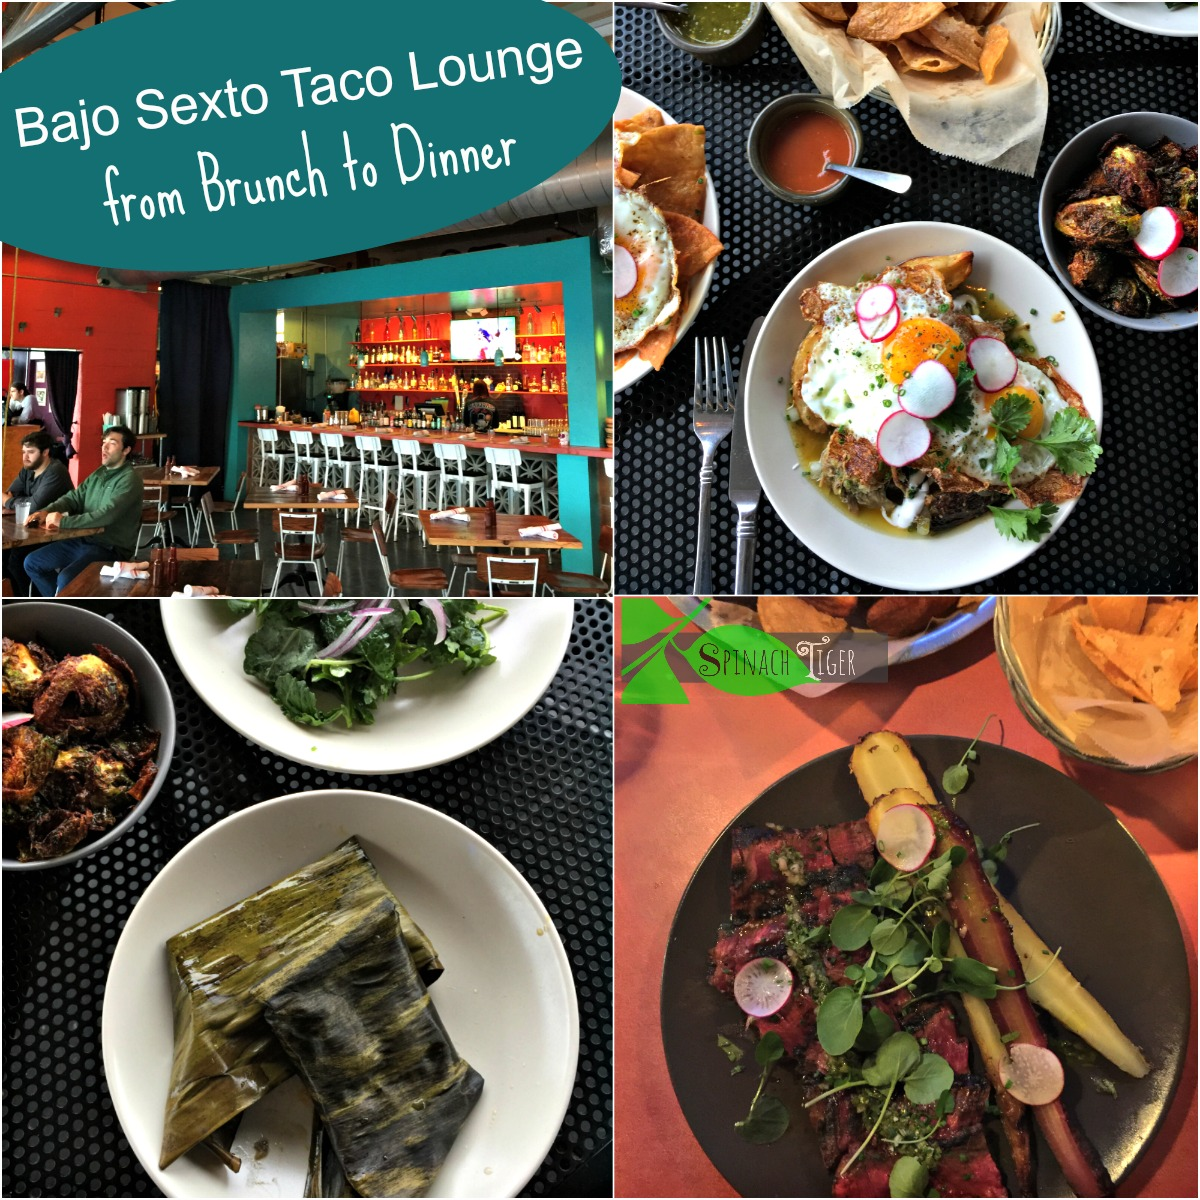 Bajo Sexto Taco Lounge from Spinach Tiger